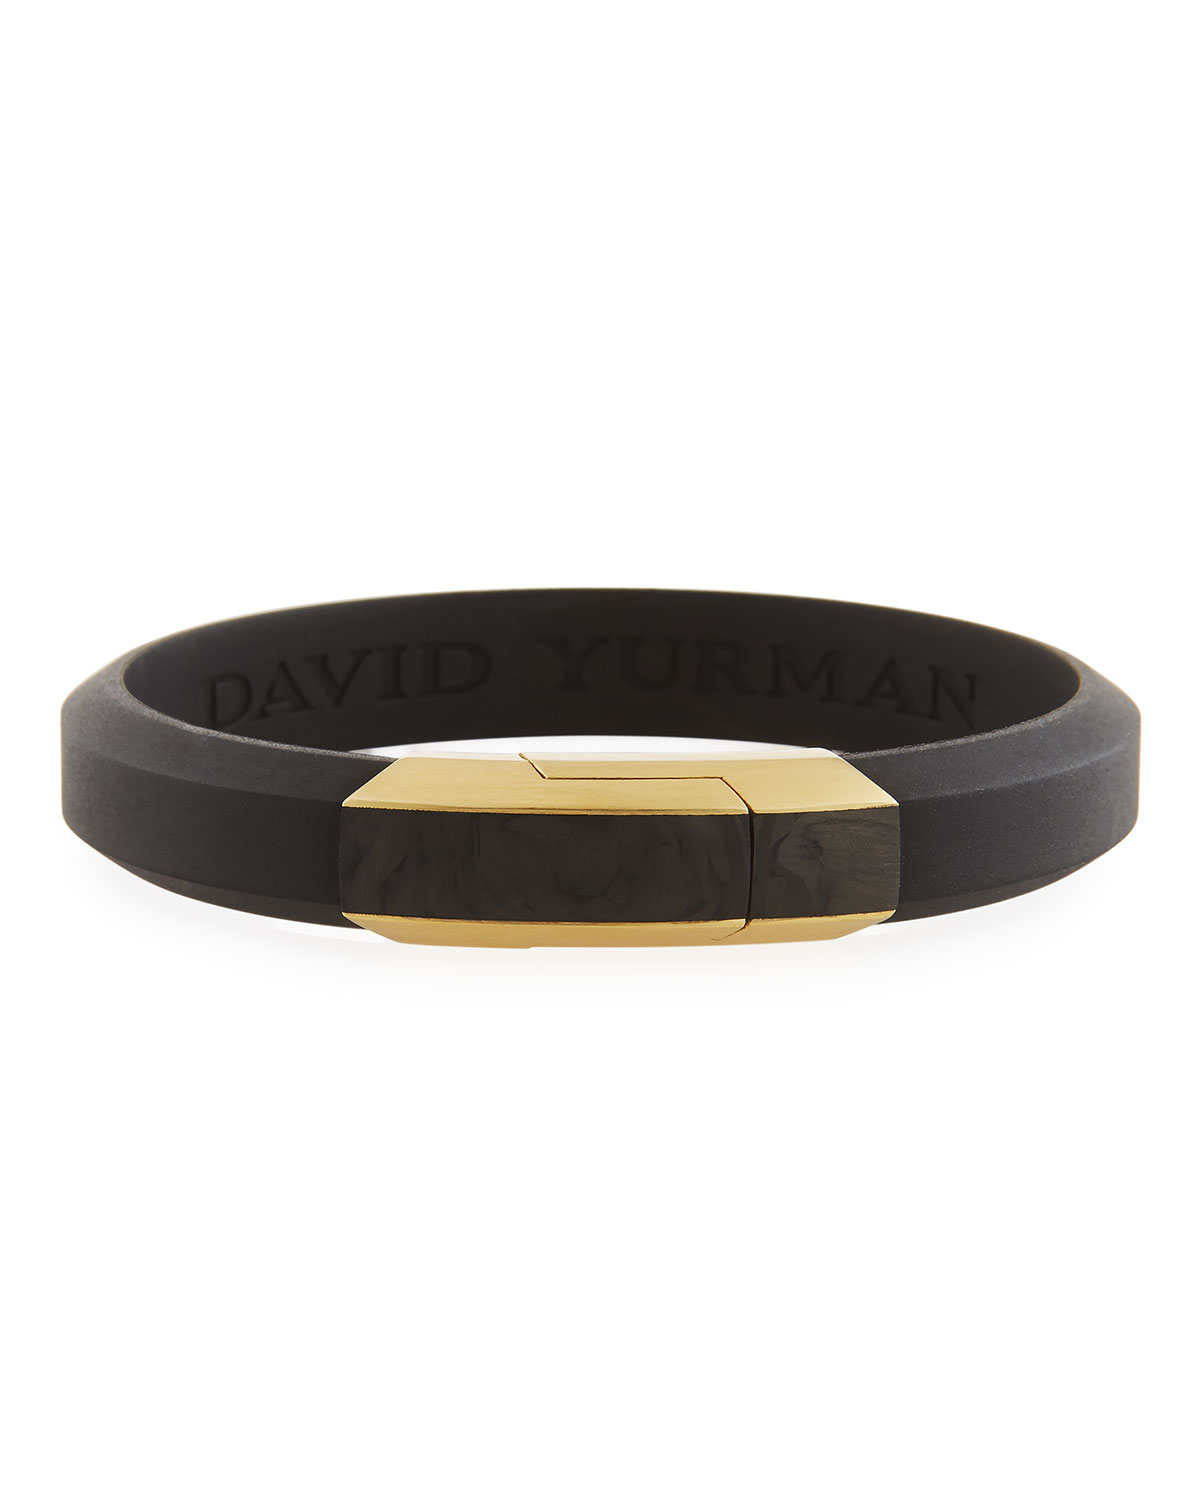 David Yurman Men's Carbon & 18k Gold I.D. Bracelet